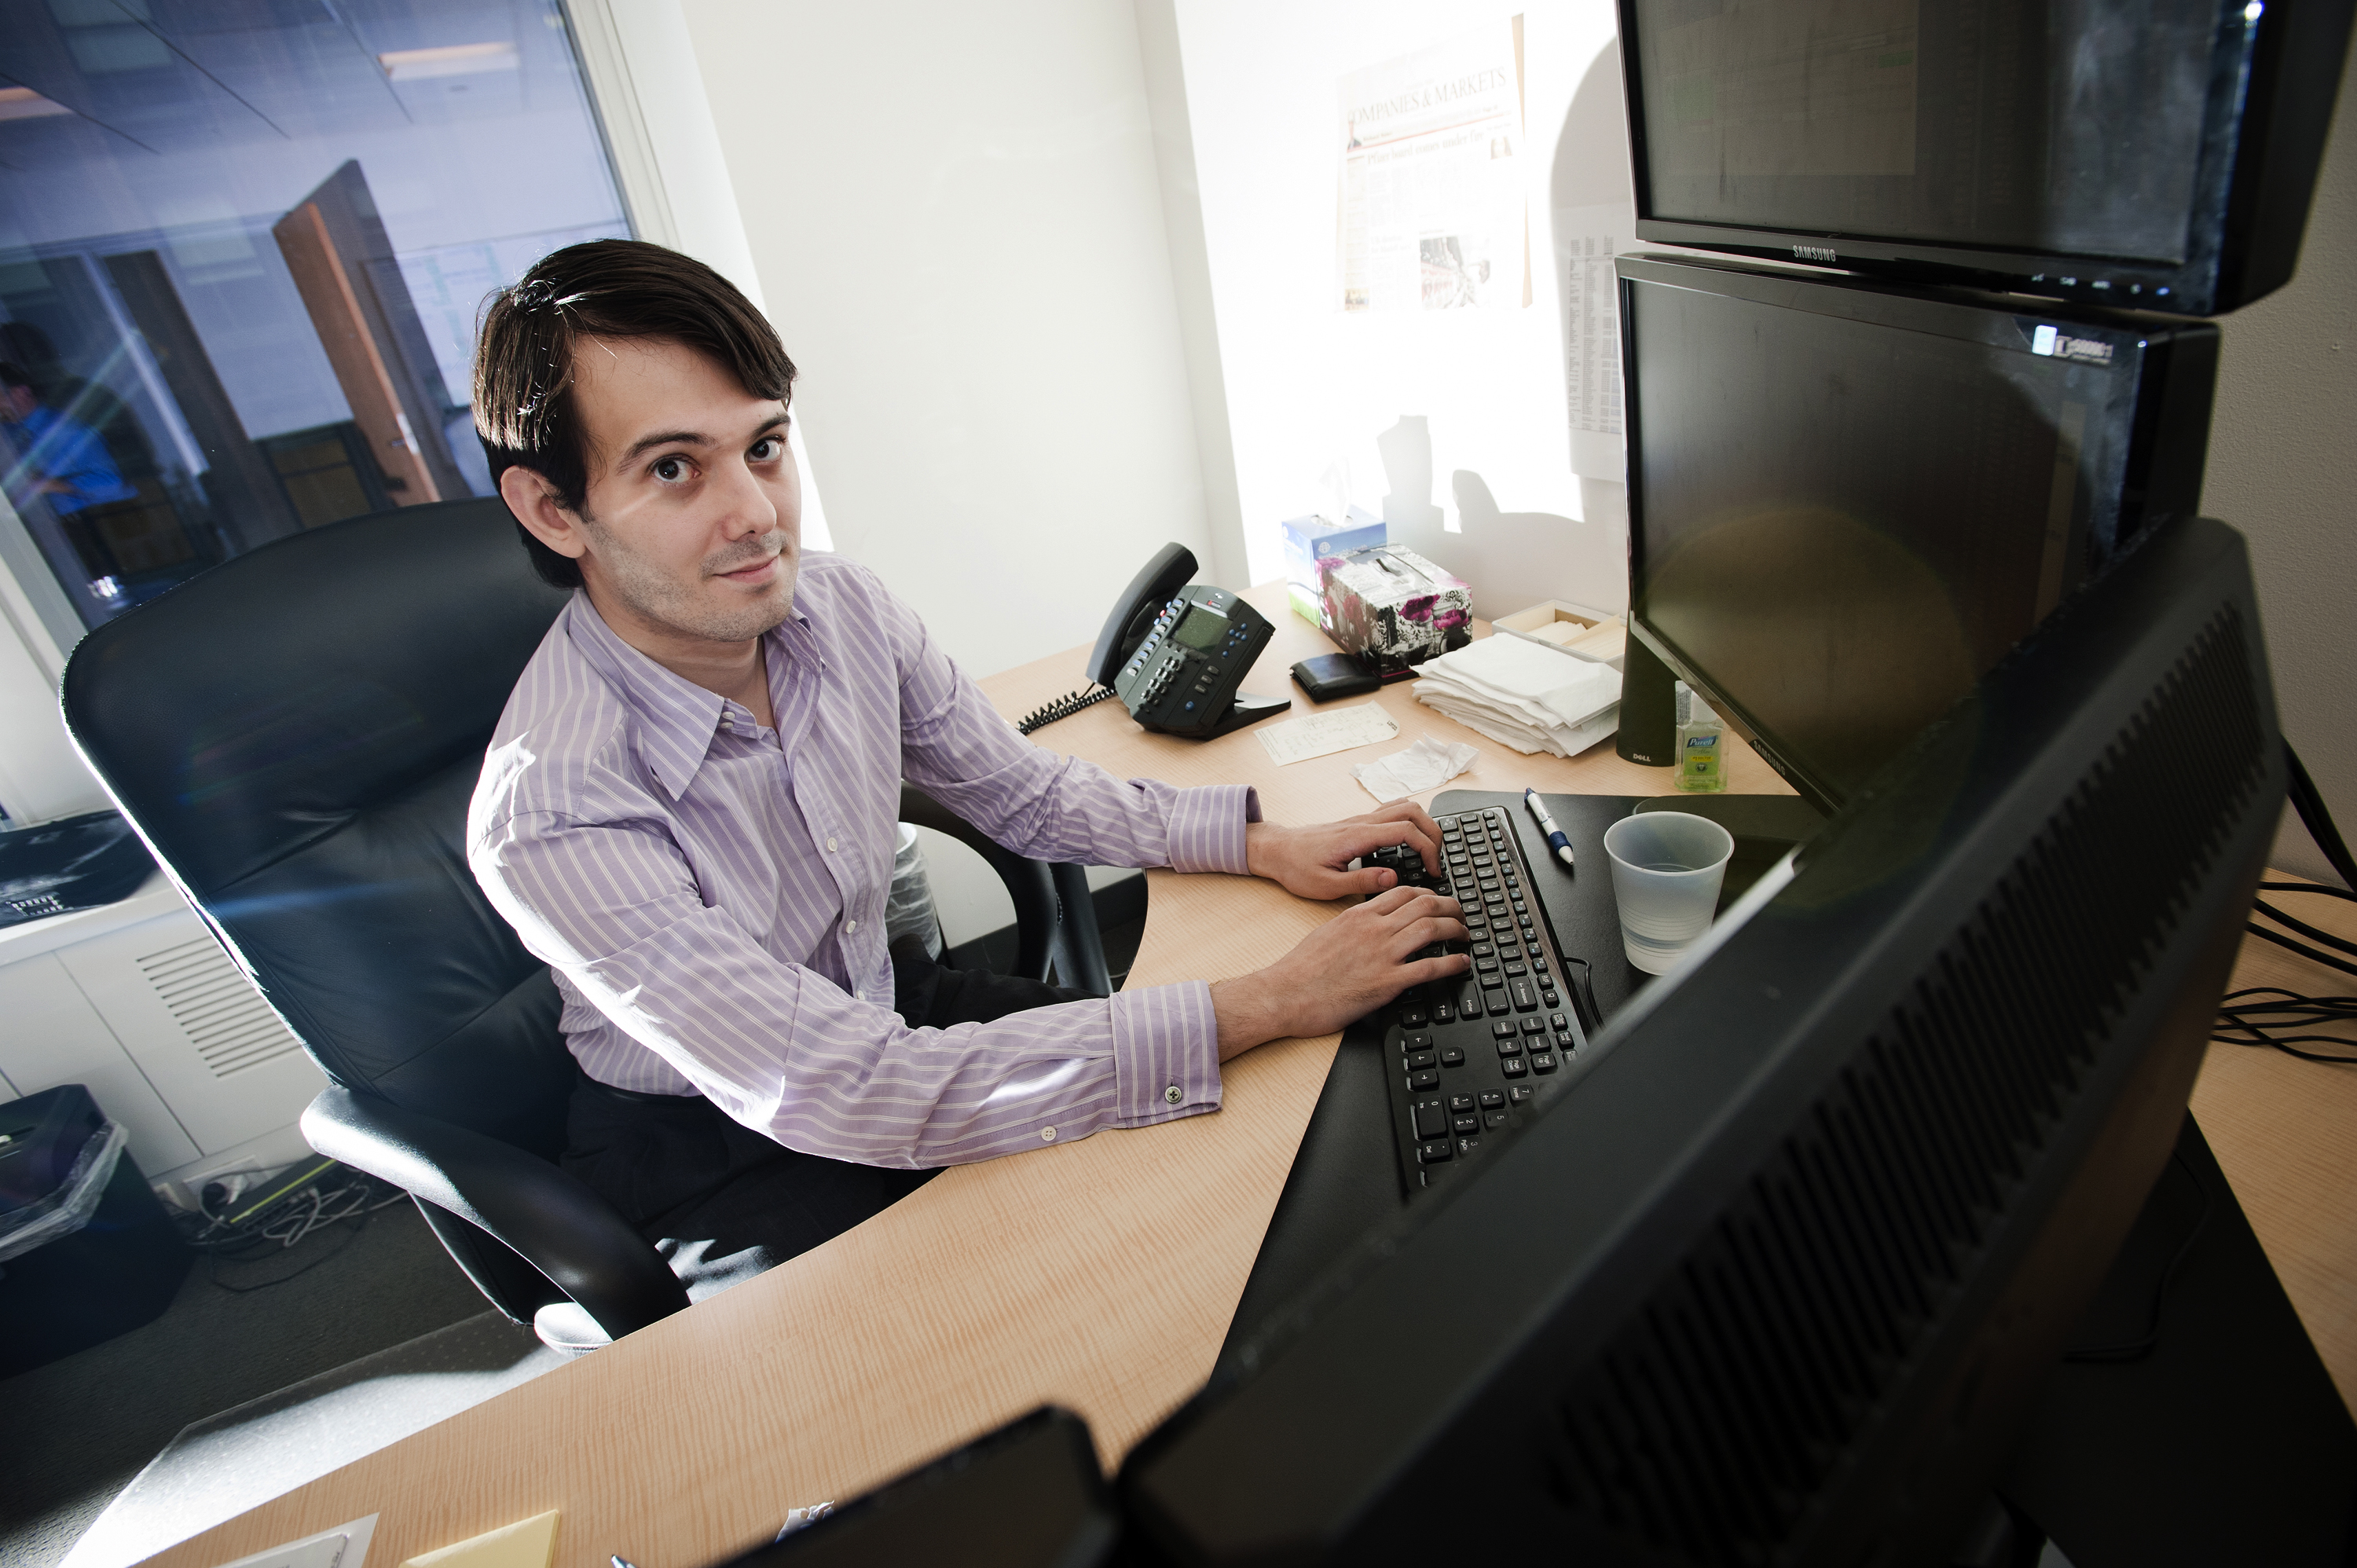 MSMB Capital Management CIO Martin Shkreli